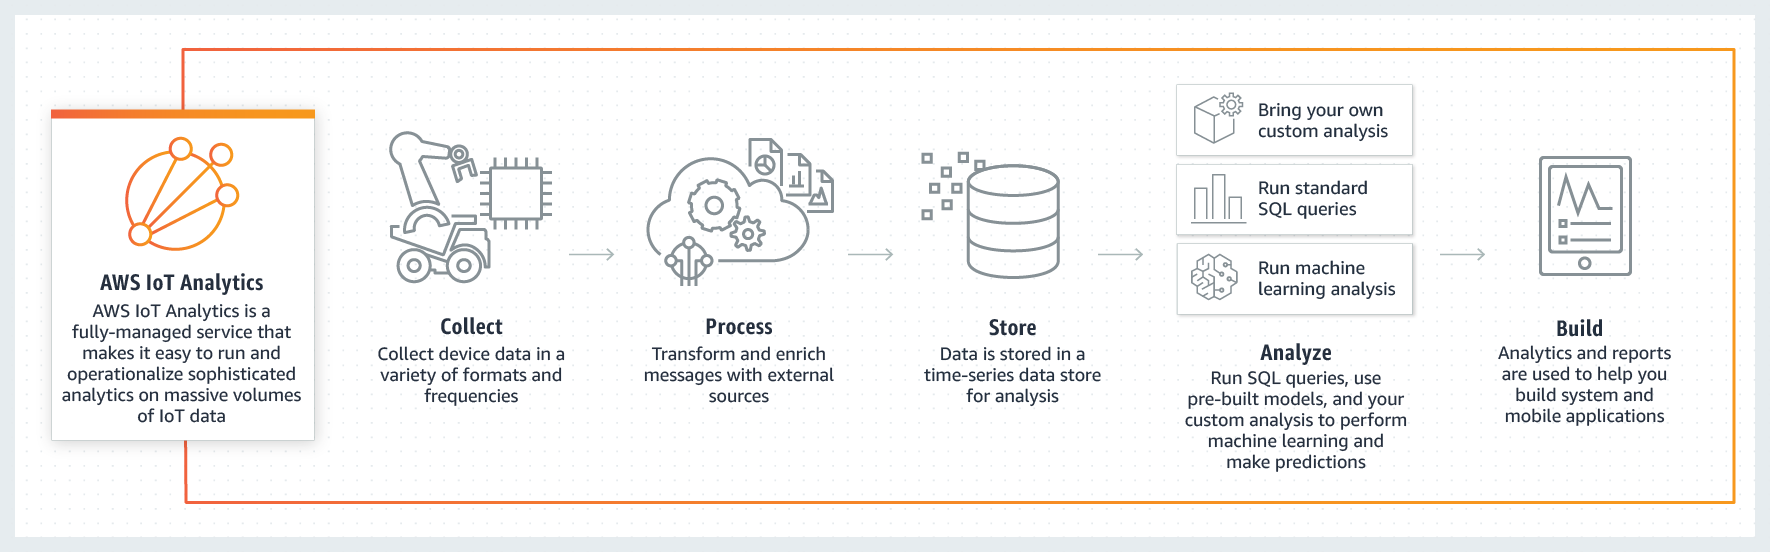 product-page-diagram_AWS-IoT-Anayltics_how-it-works